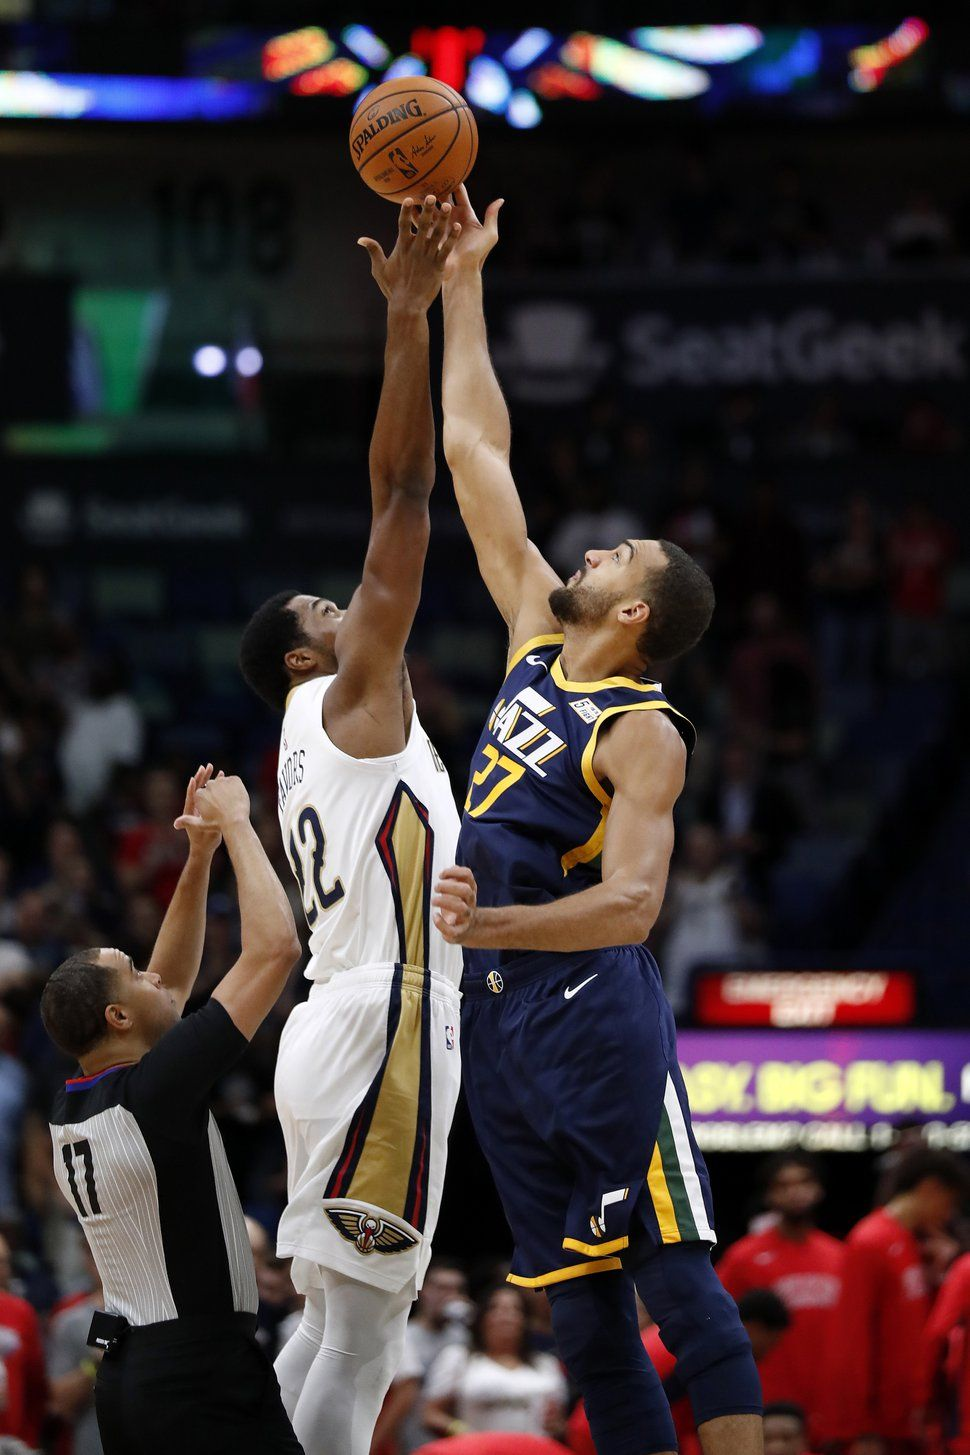 The Jazz Gave Up Some Big Names To Retool Their Roster Is The Perfect High Quality Nba Basketball Wallpaper Wit In 2020 Nba Basketball Teams Texas Tech Basketball Jazz